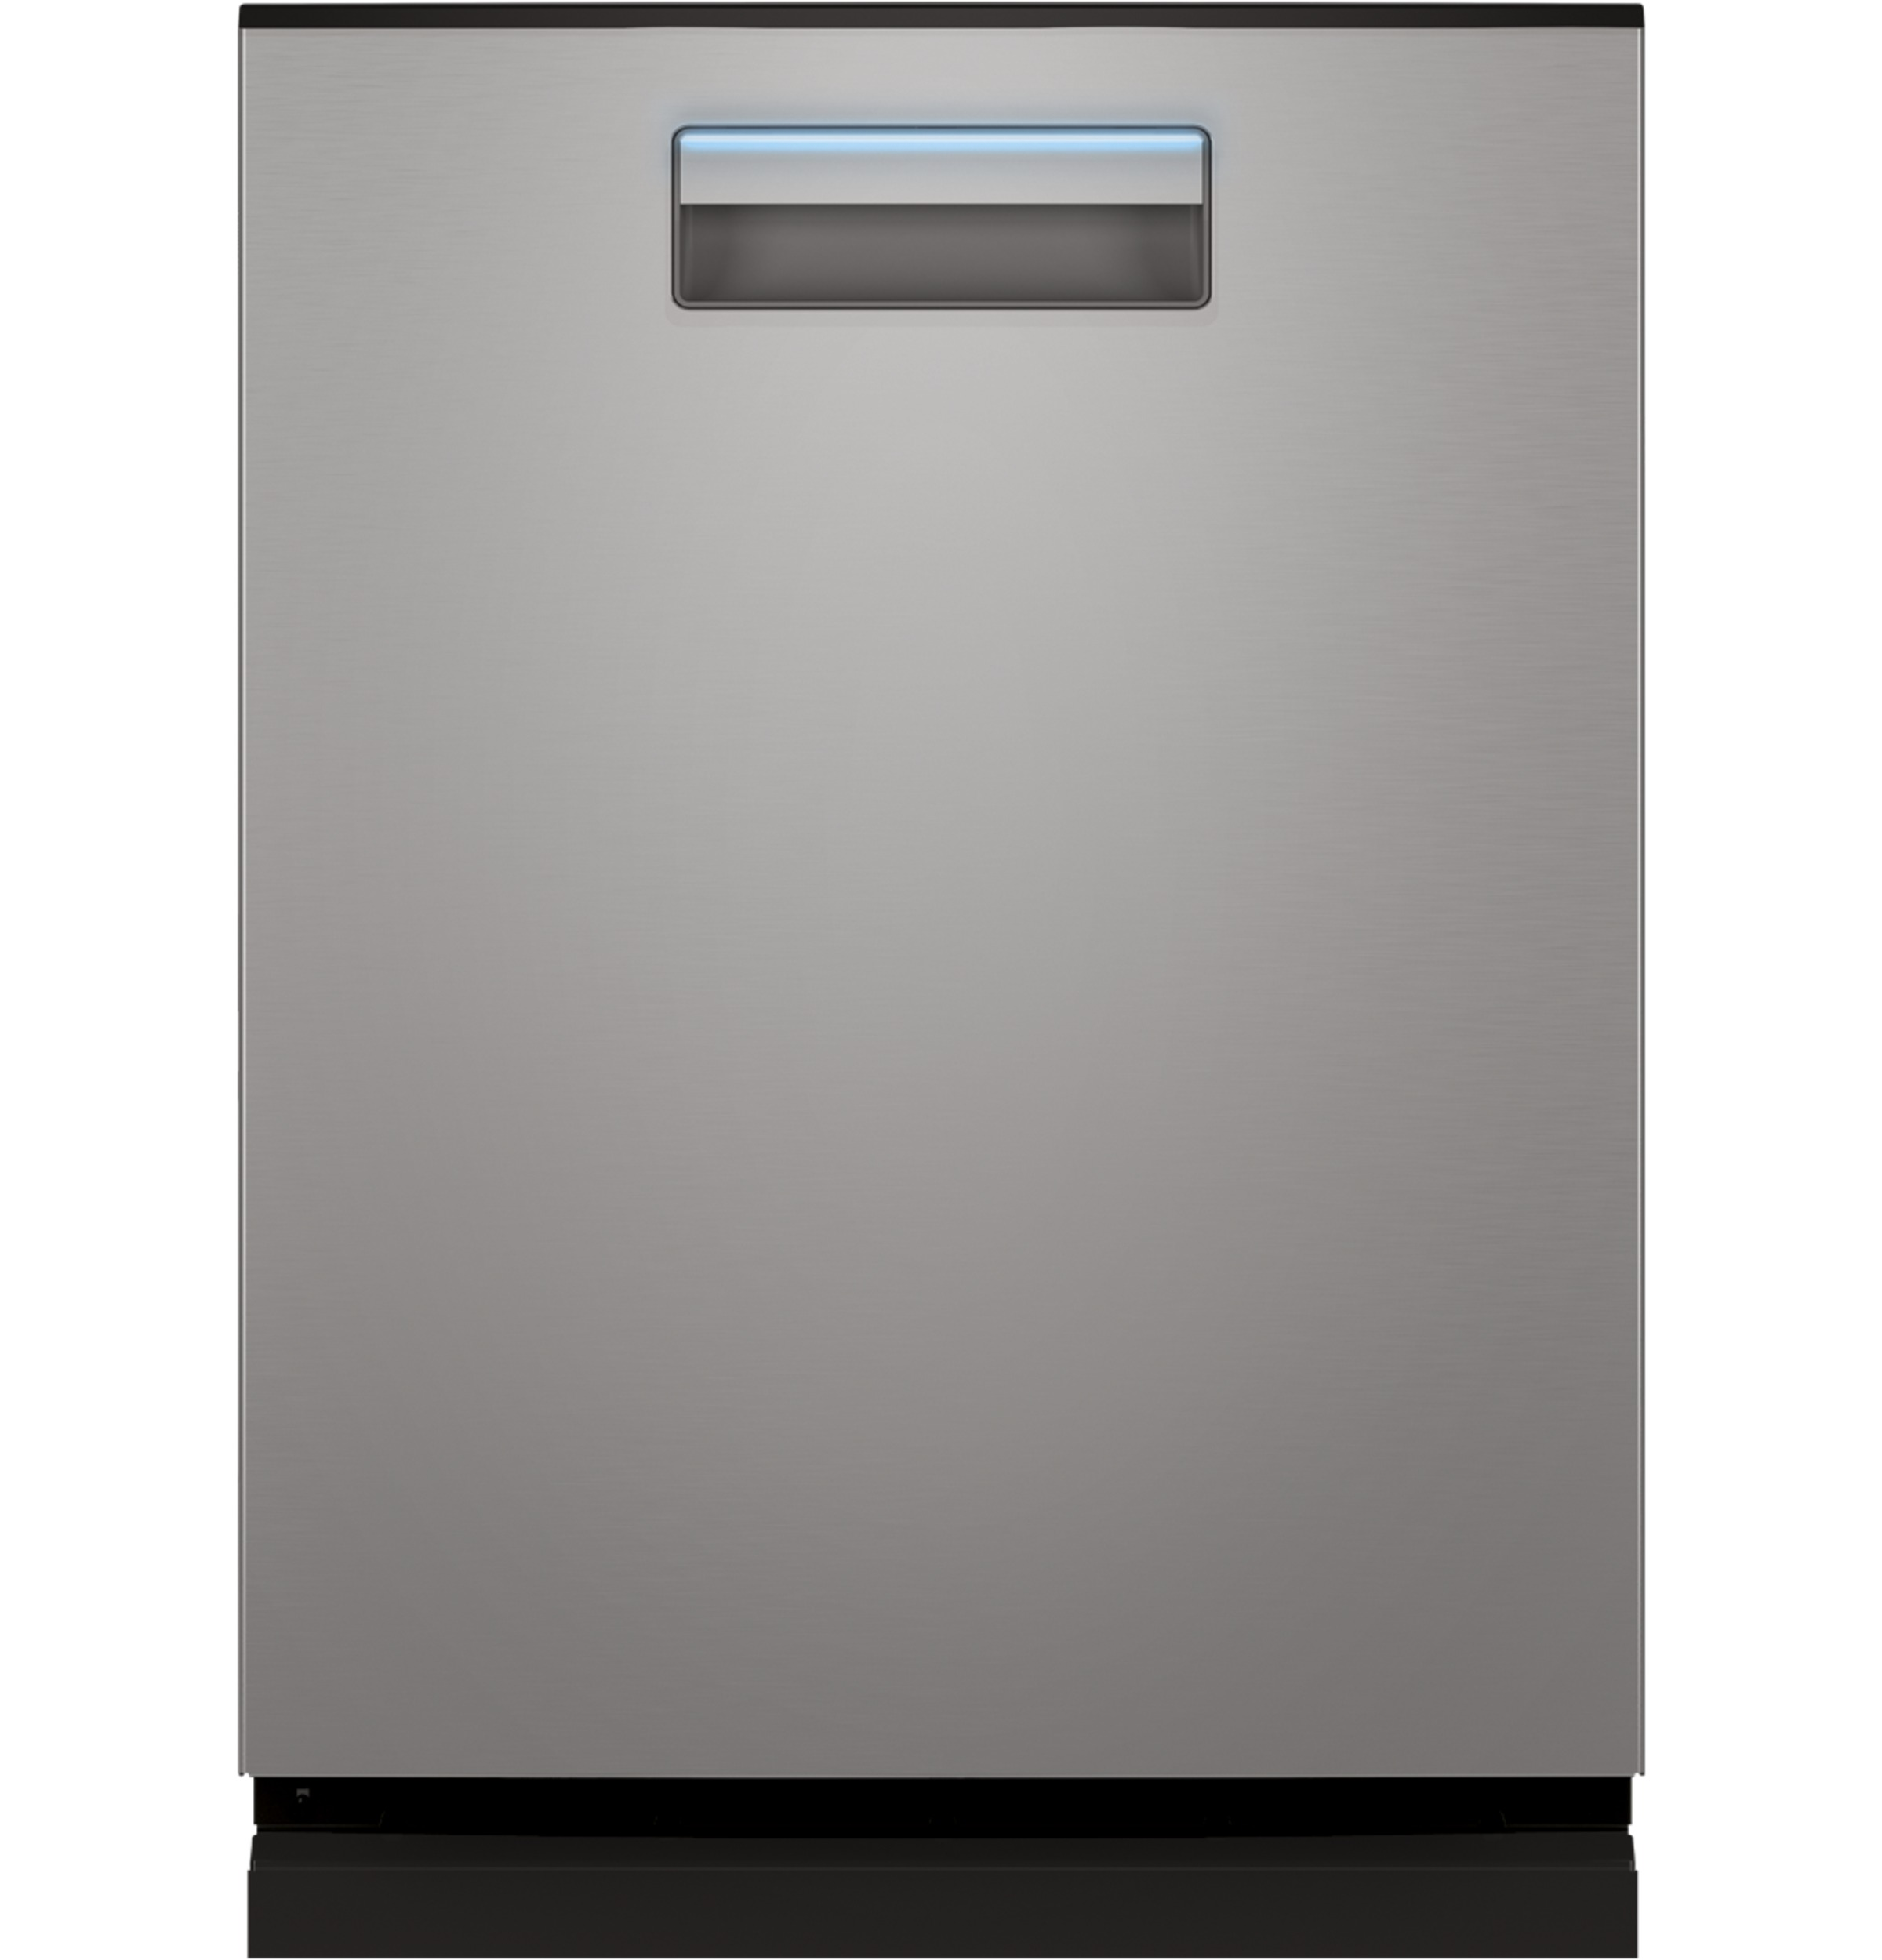 Haier Haier Smart Top Control with Stainless Steel Interior Dishwasher with Sanitize Cycle